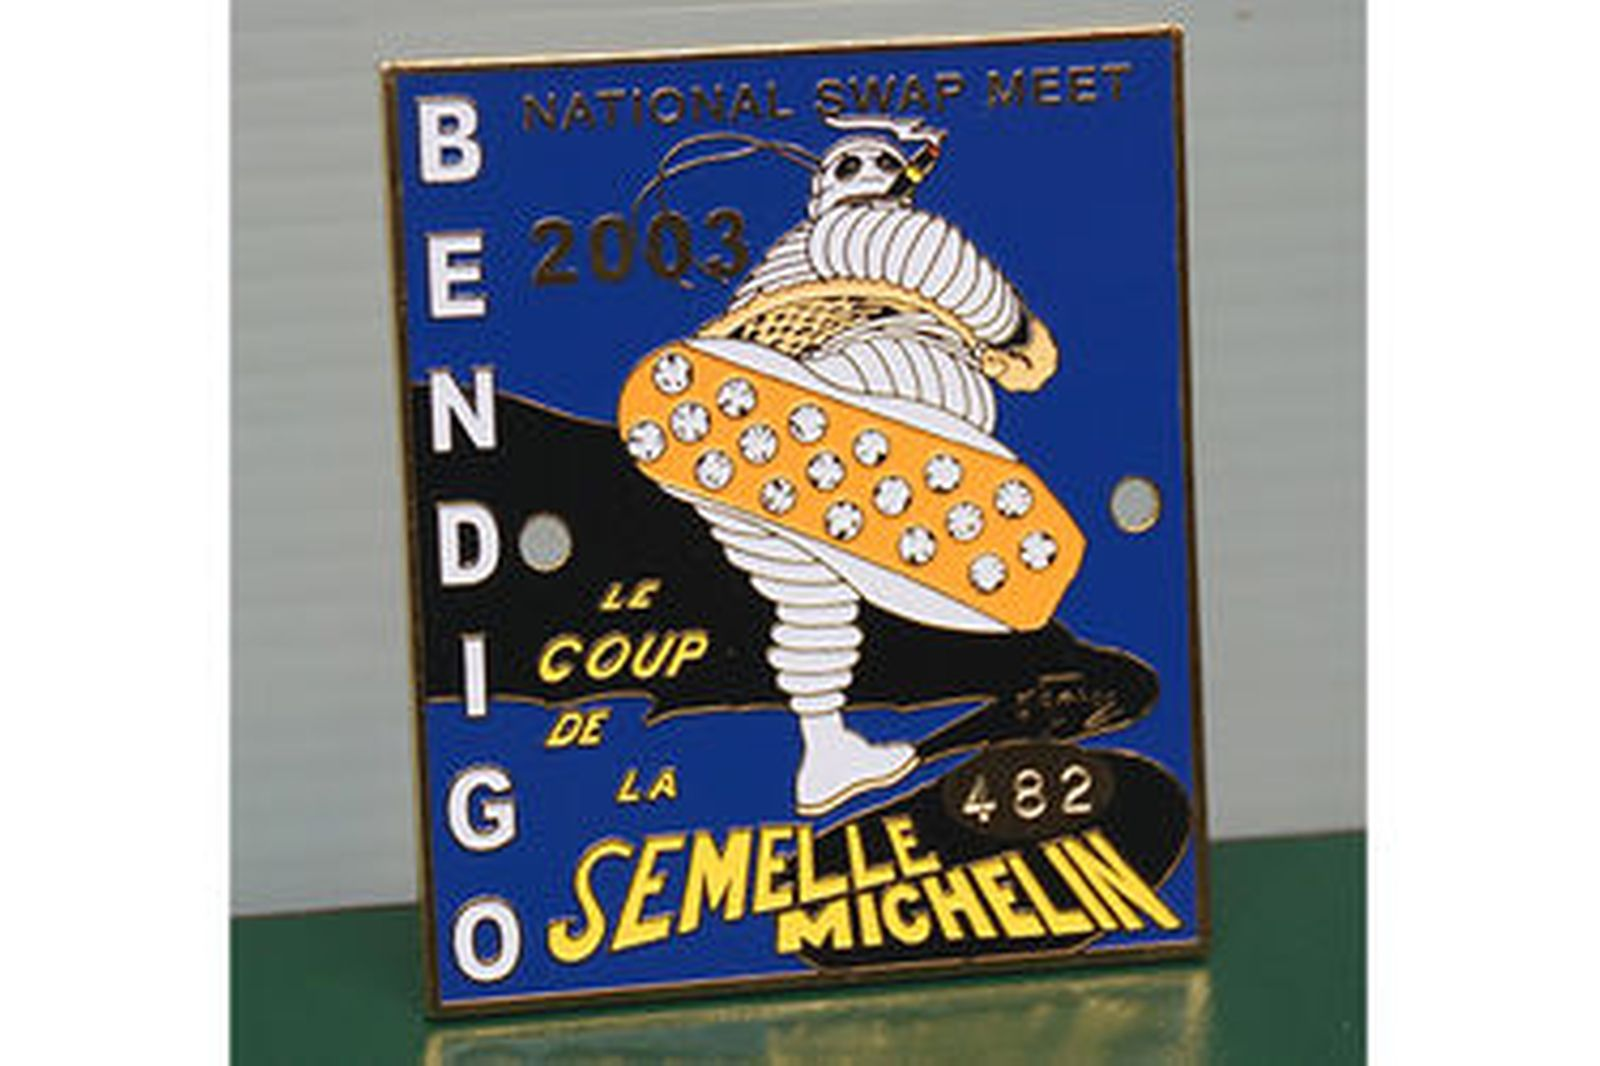 Michelin Collection - Cristal Clock, Bibendum Limited Edition Figurine & Bendigo Swap Meet Badge